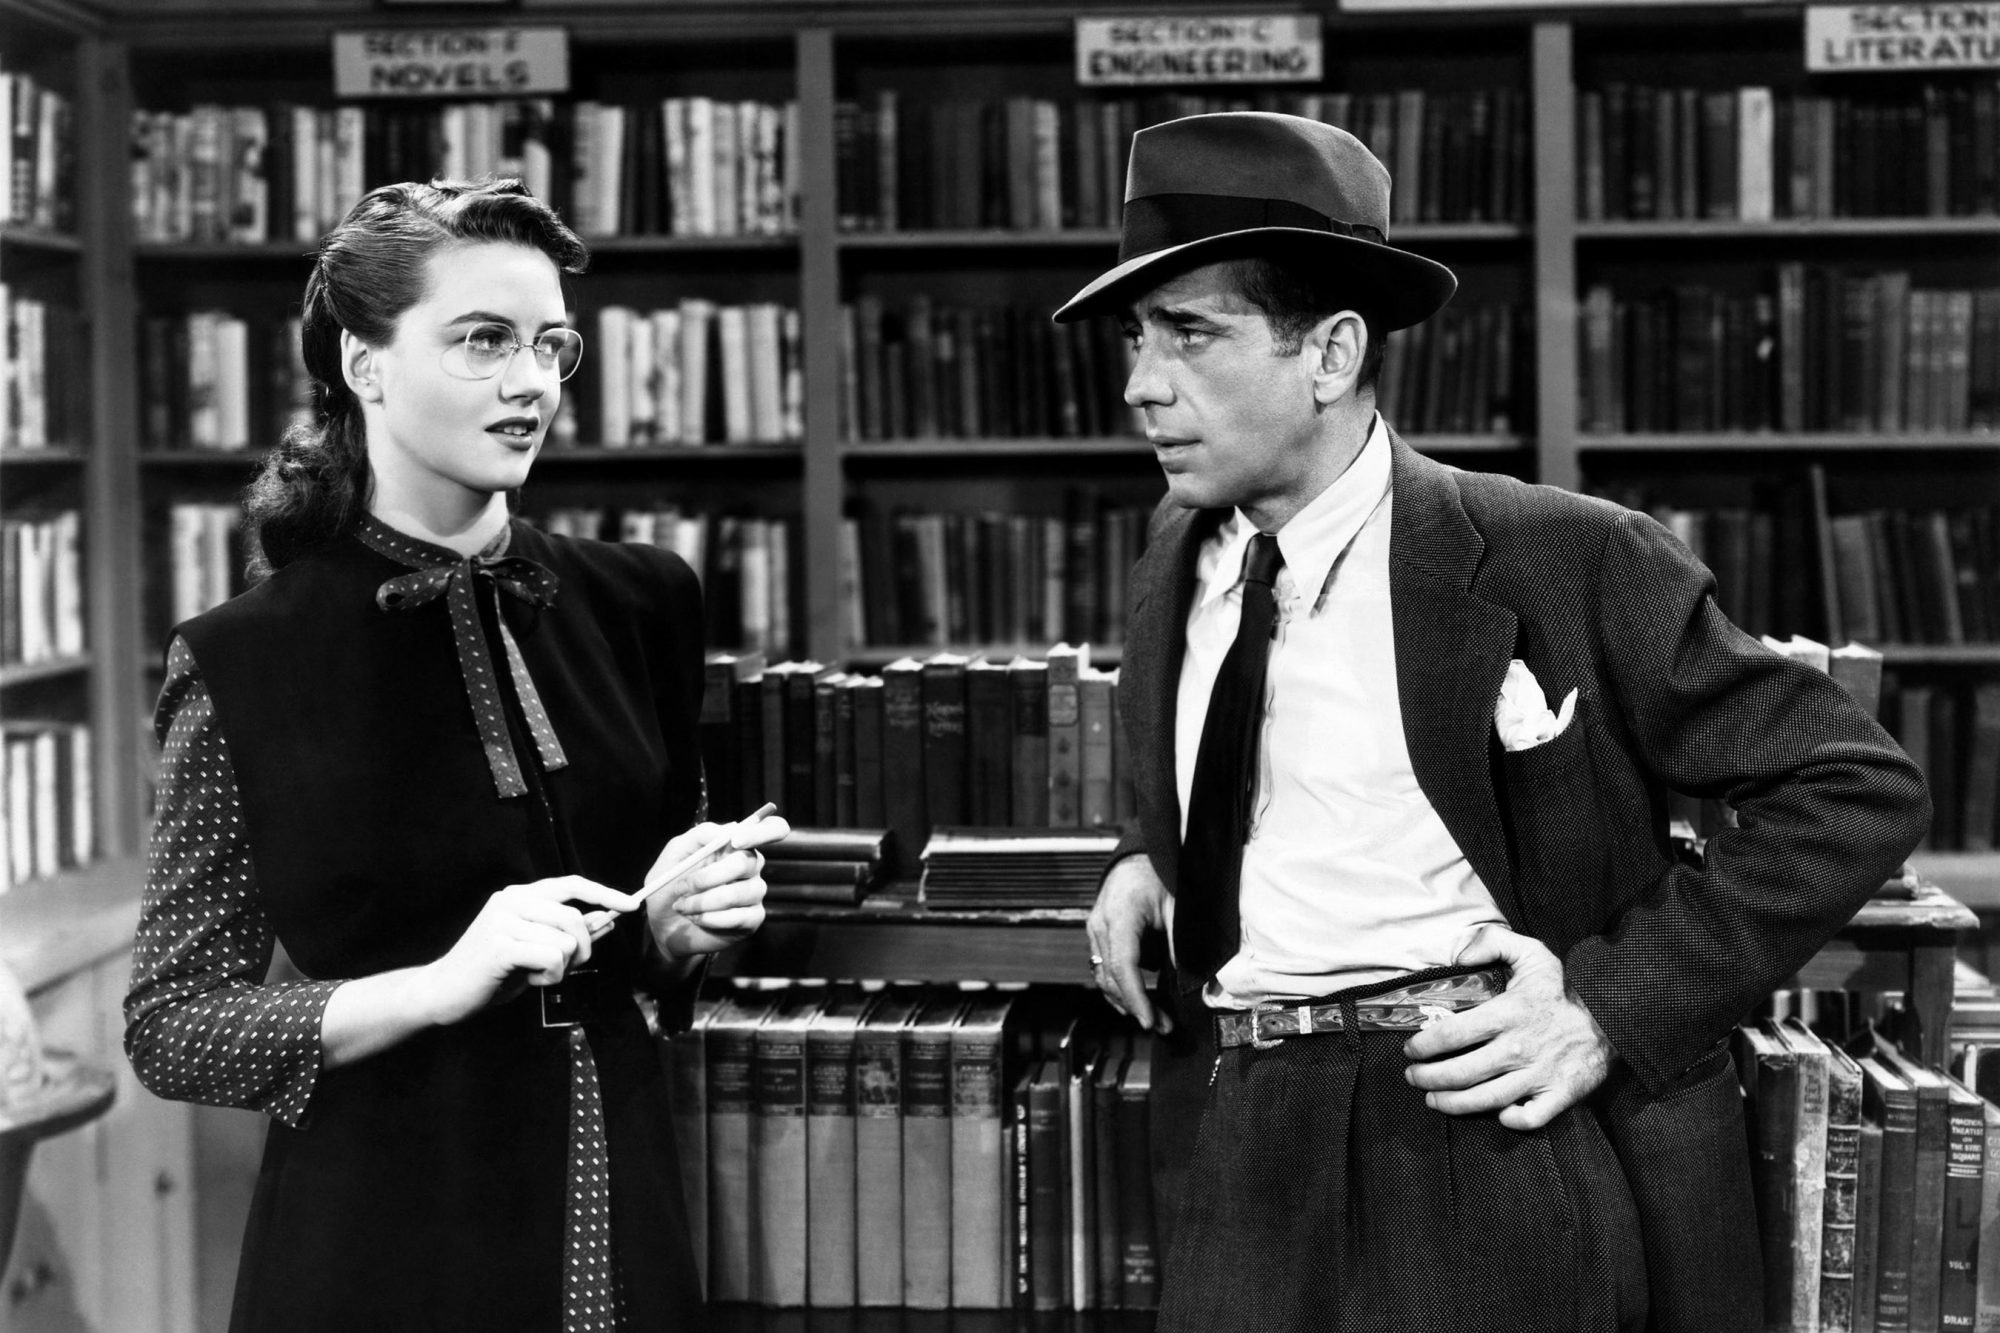 THE BIG SLEEP, from left, Dorothy Malone, Humphrey Bogart, 1946